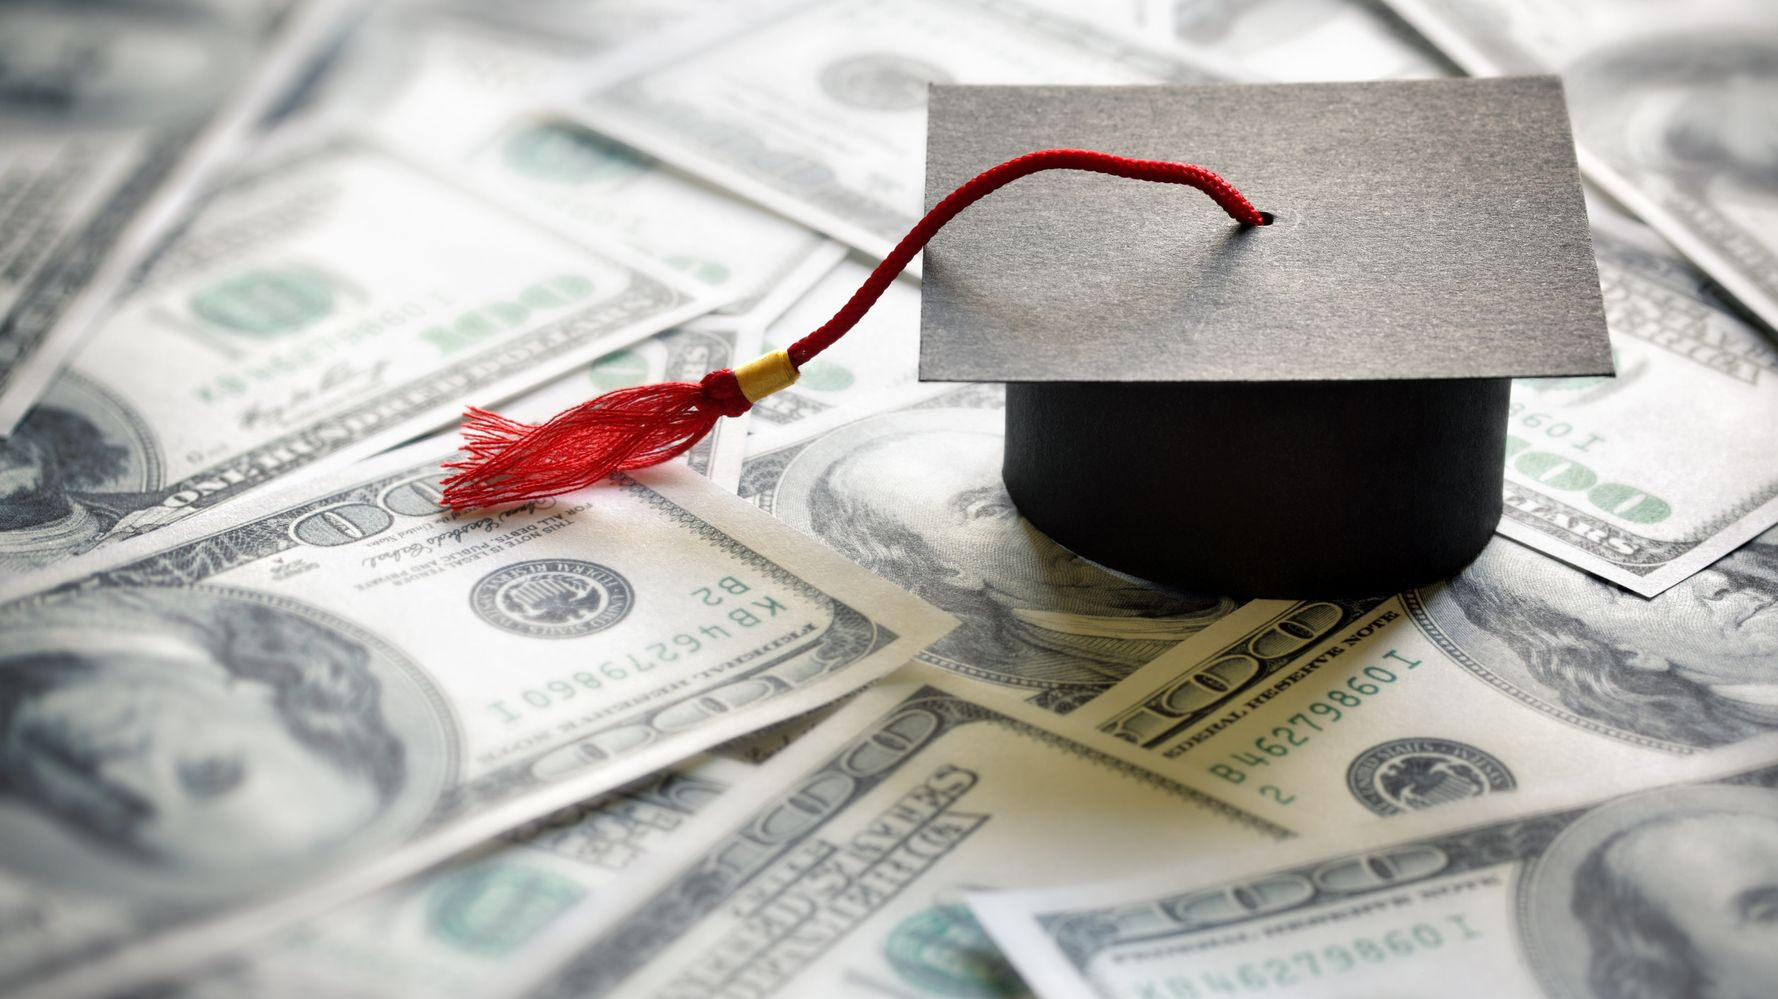 6 Legit Ways To Lower Your Student Loan Payments